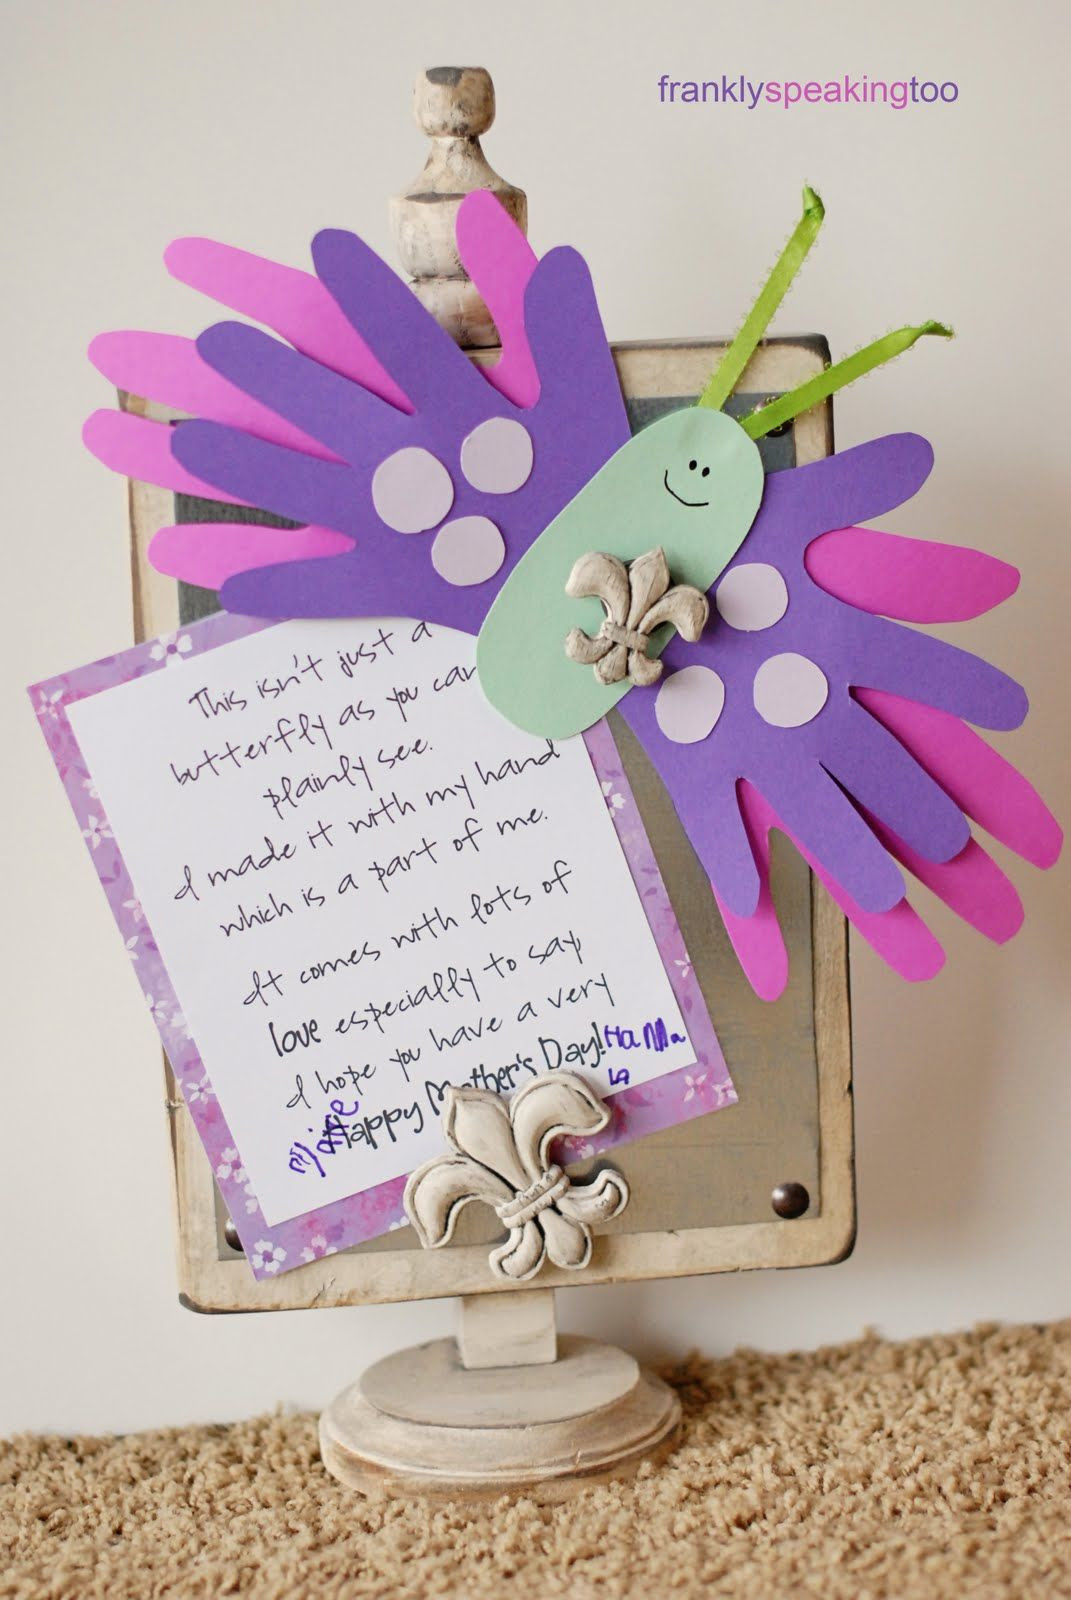 Best ideas about Mother'S Day Gift Ideas From Kids . Save or Pin Frankly Speaking Too iLoveToCreate Butterfly Mother s Now.